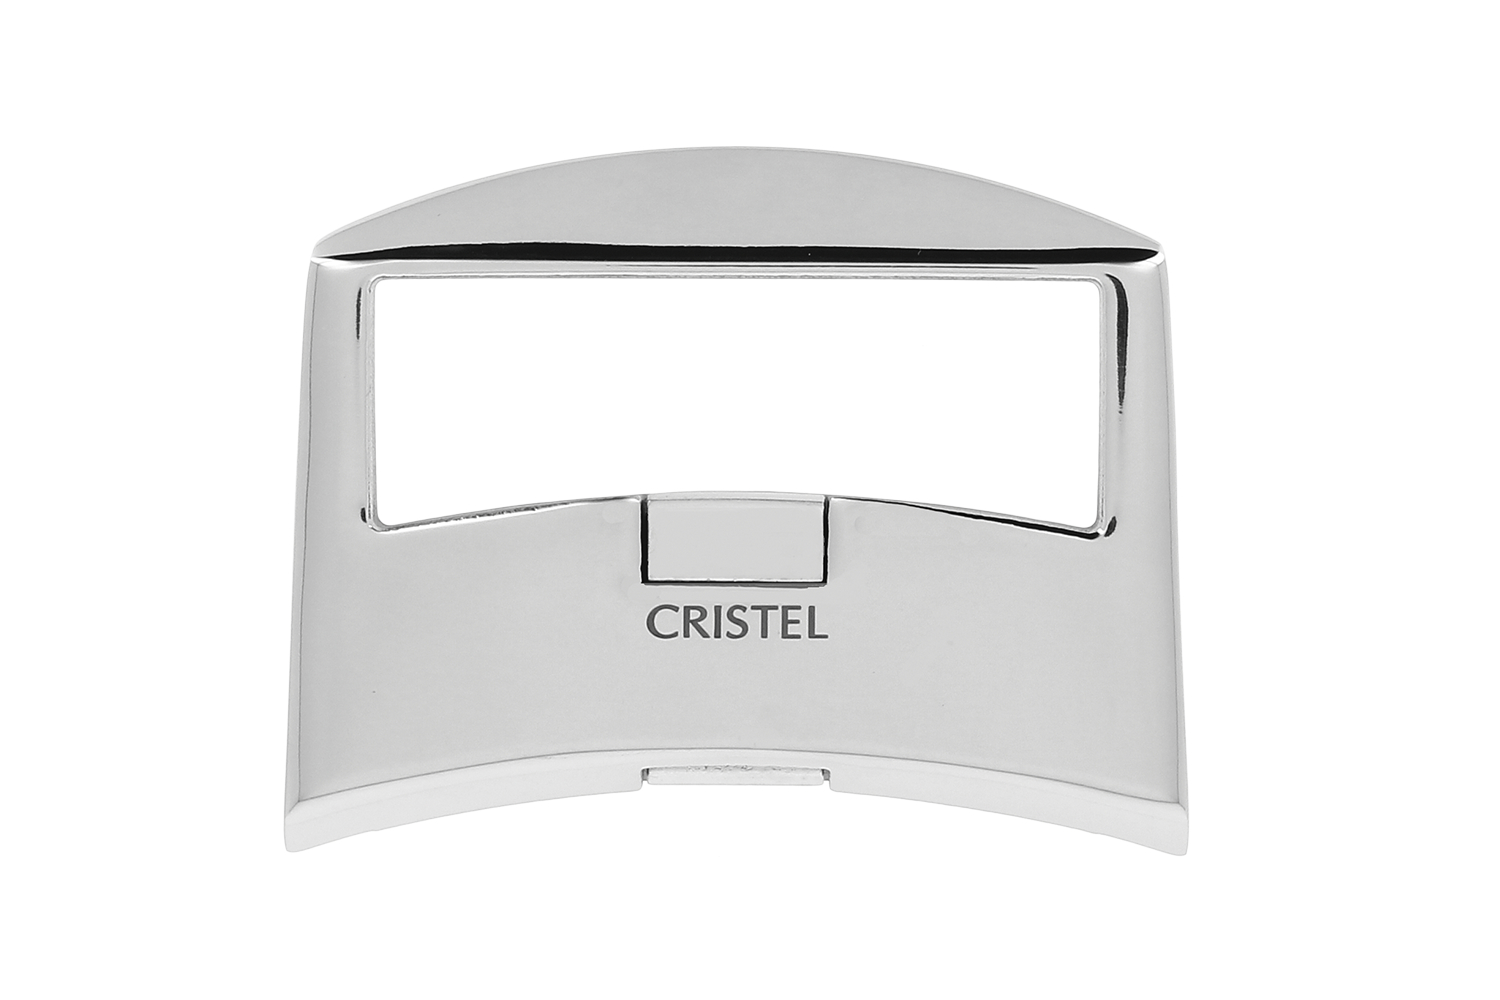 Cristel Casteline Stainless Steel Removable Side Handle